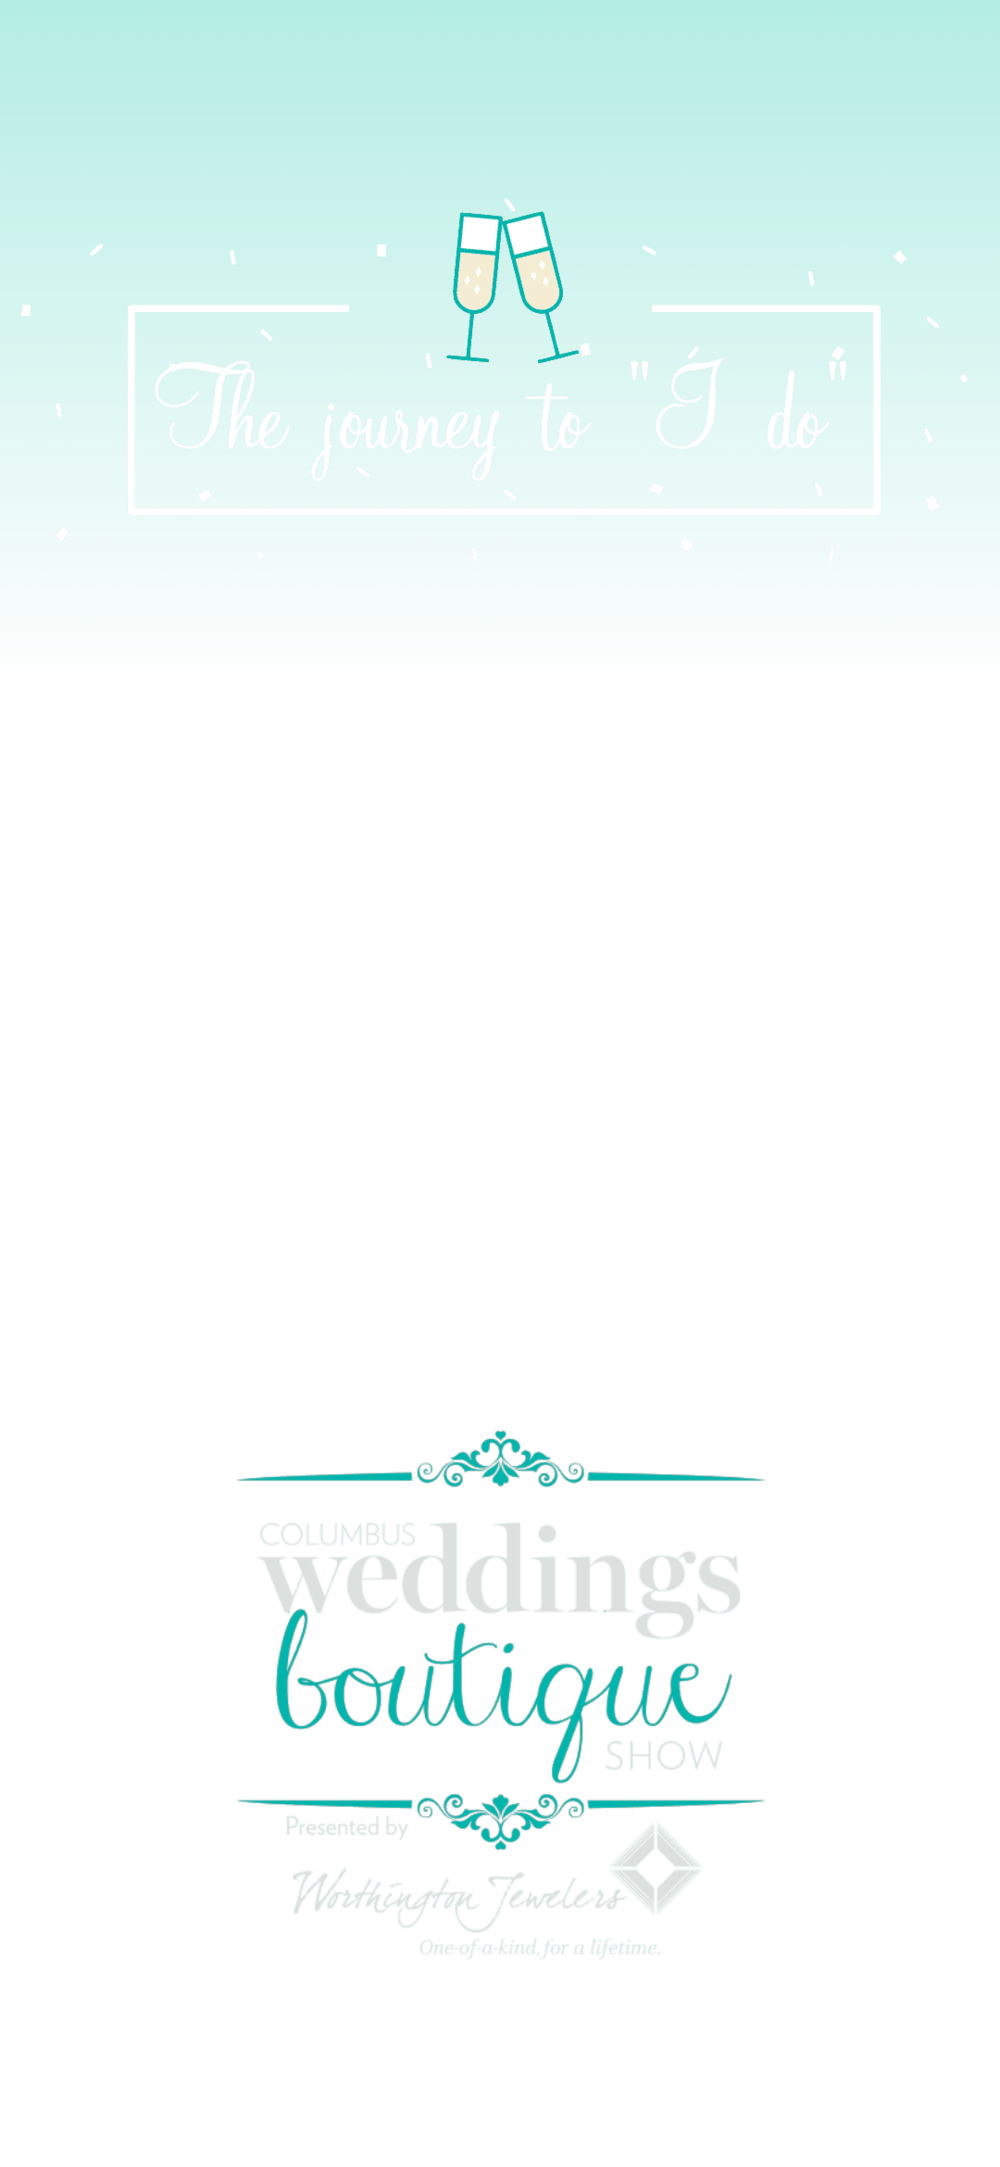 boutique snapchat geofilter.png